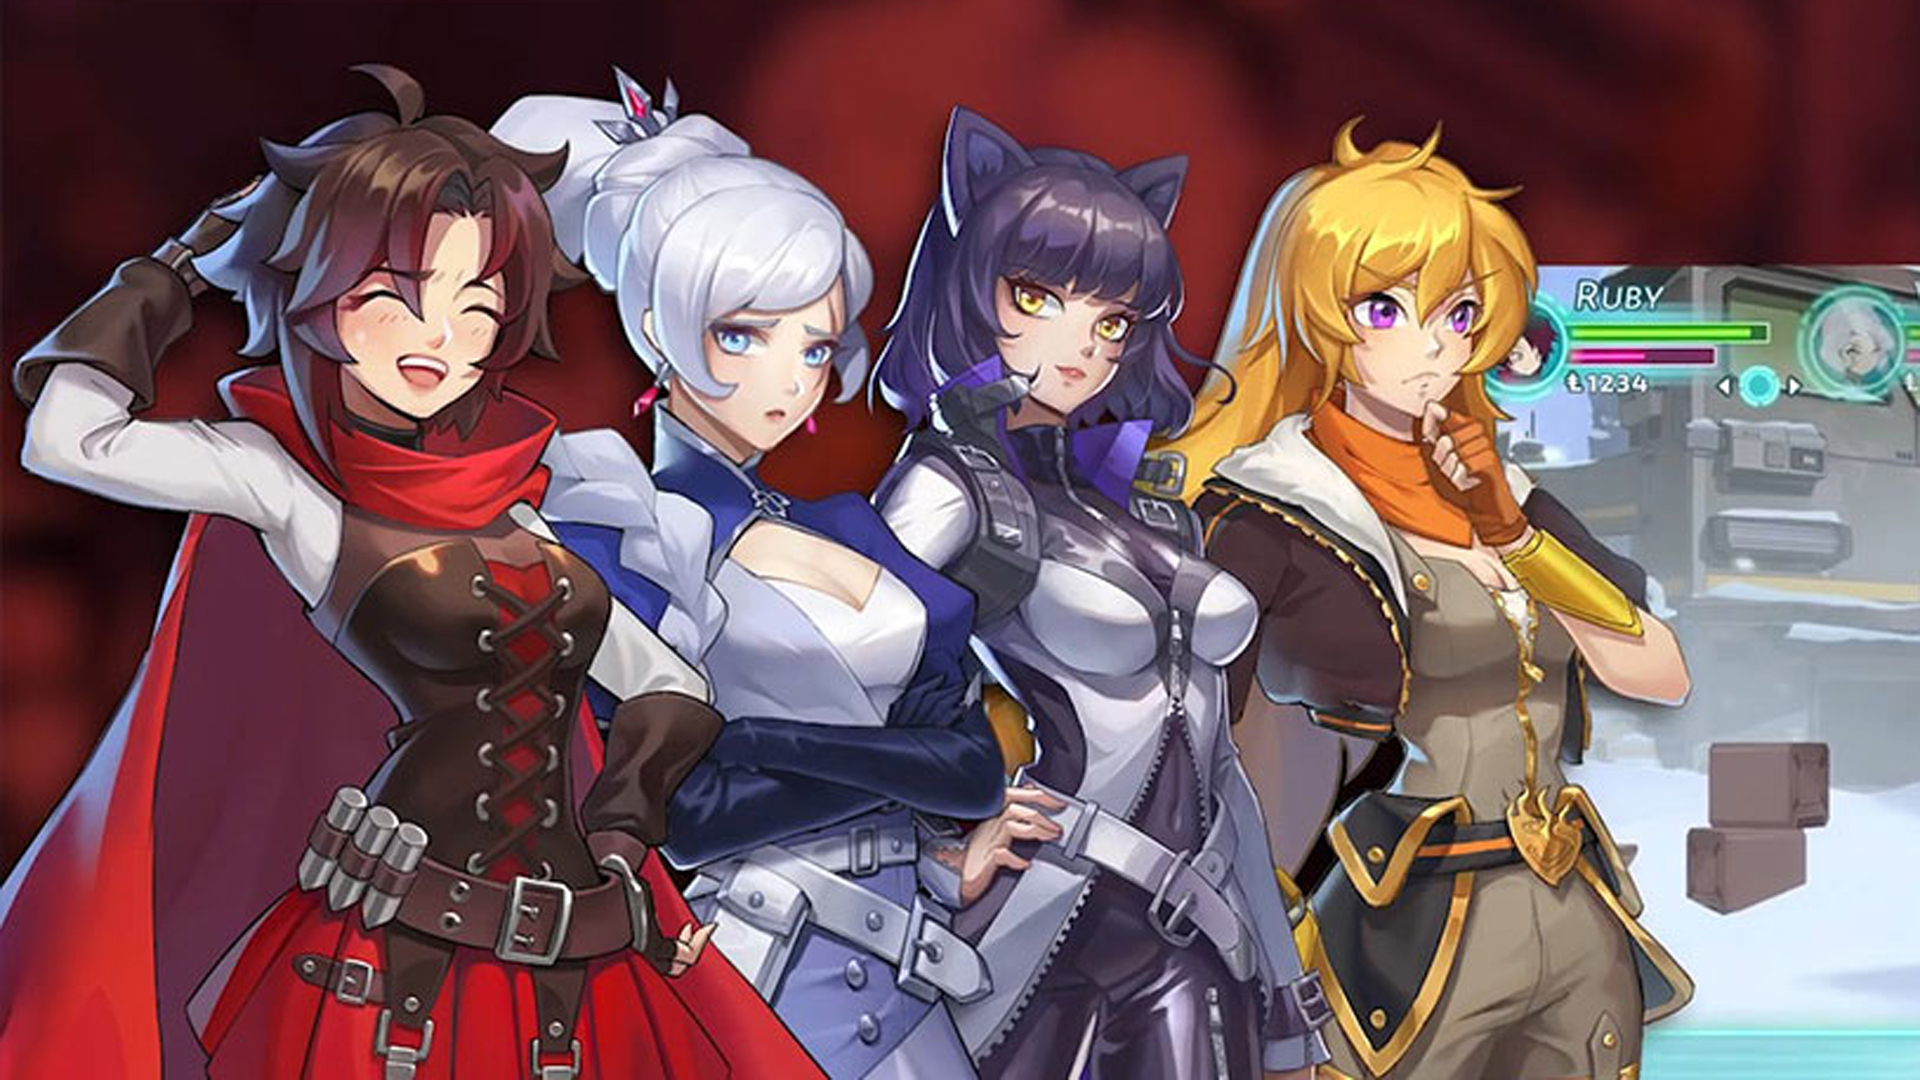 RWBY: Arrowfell is the next 2D Metroidvania from the River City Girls devs